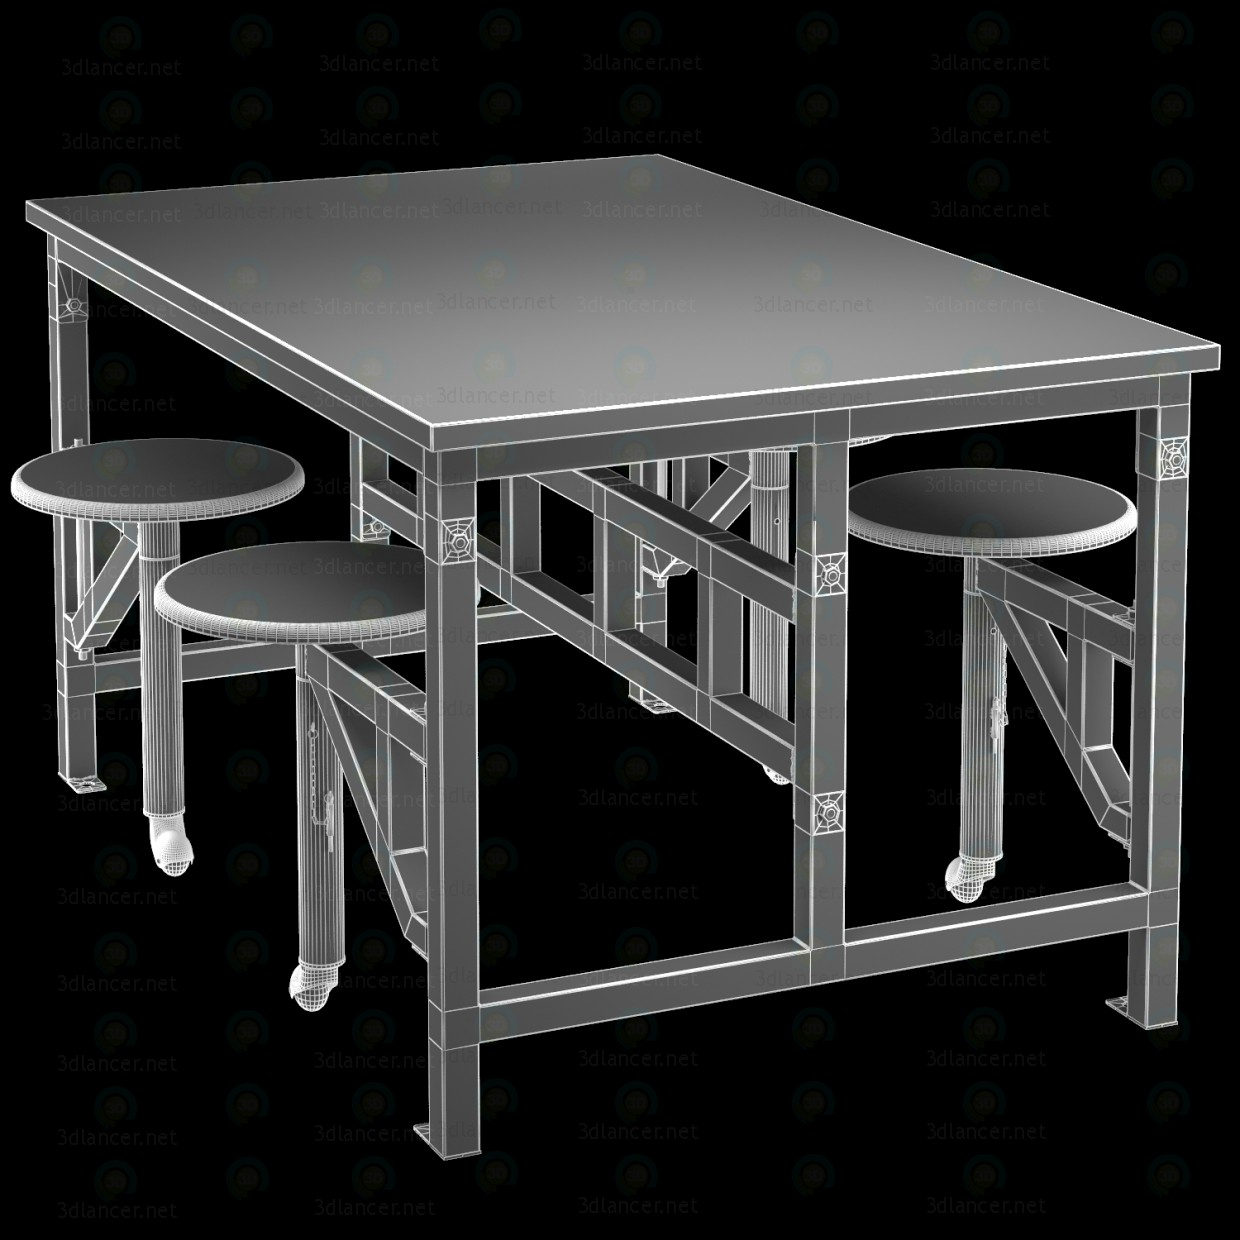 3d Wooden table with bar stools model buy - render